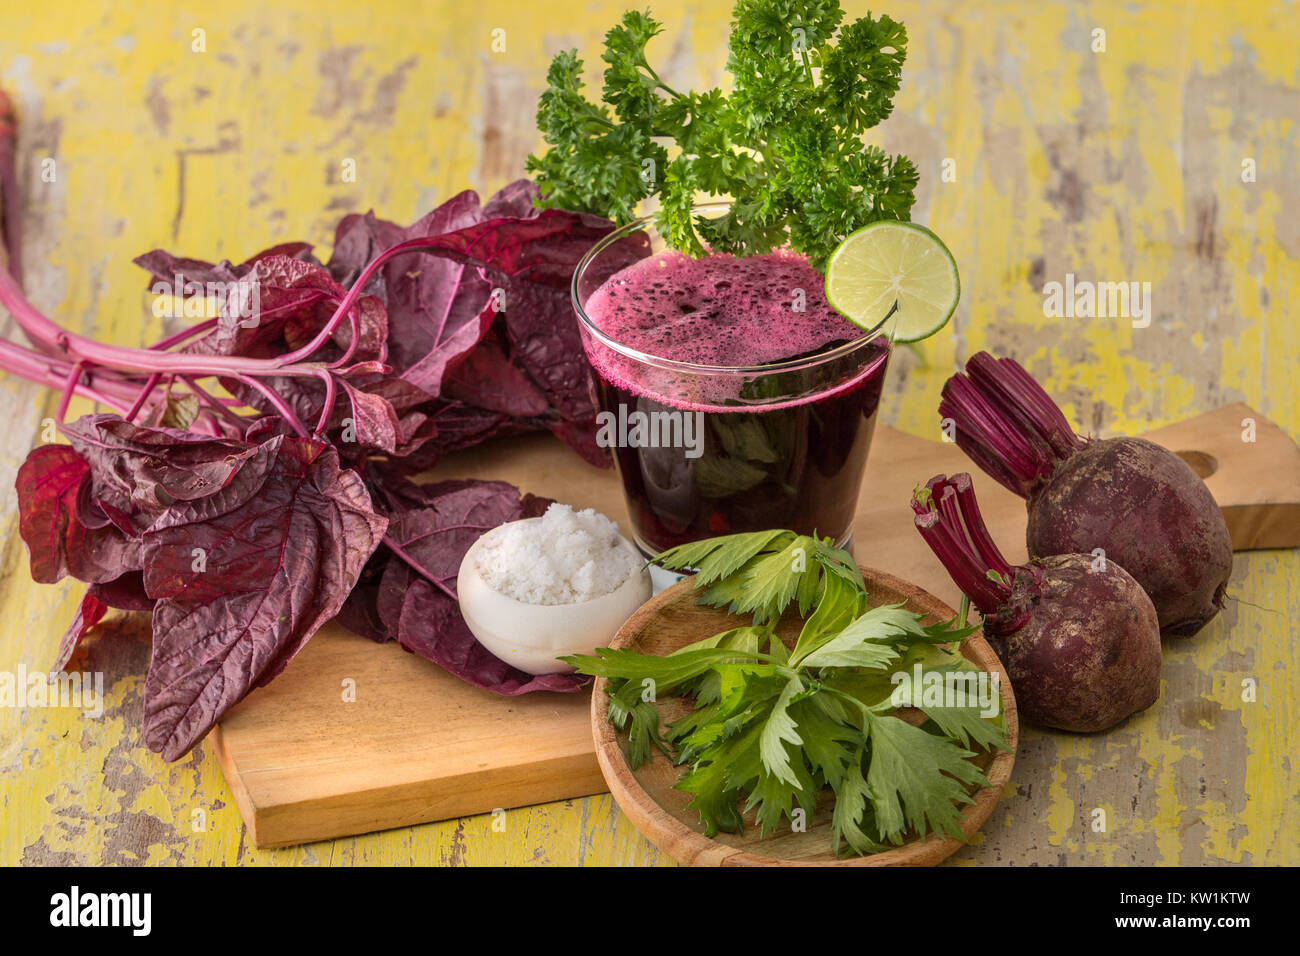 Beet and Red spinach Smoothie - Stock Image